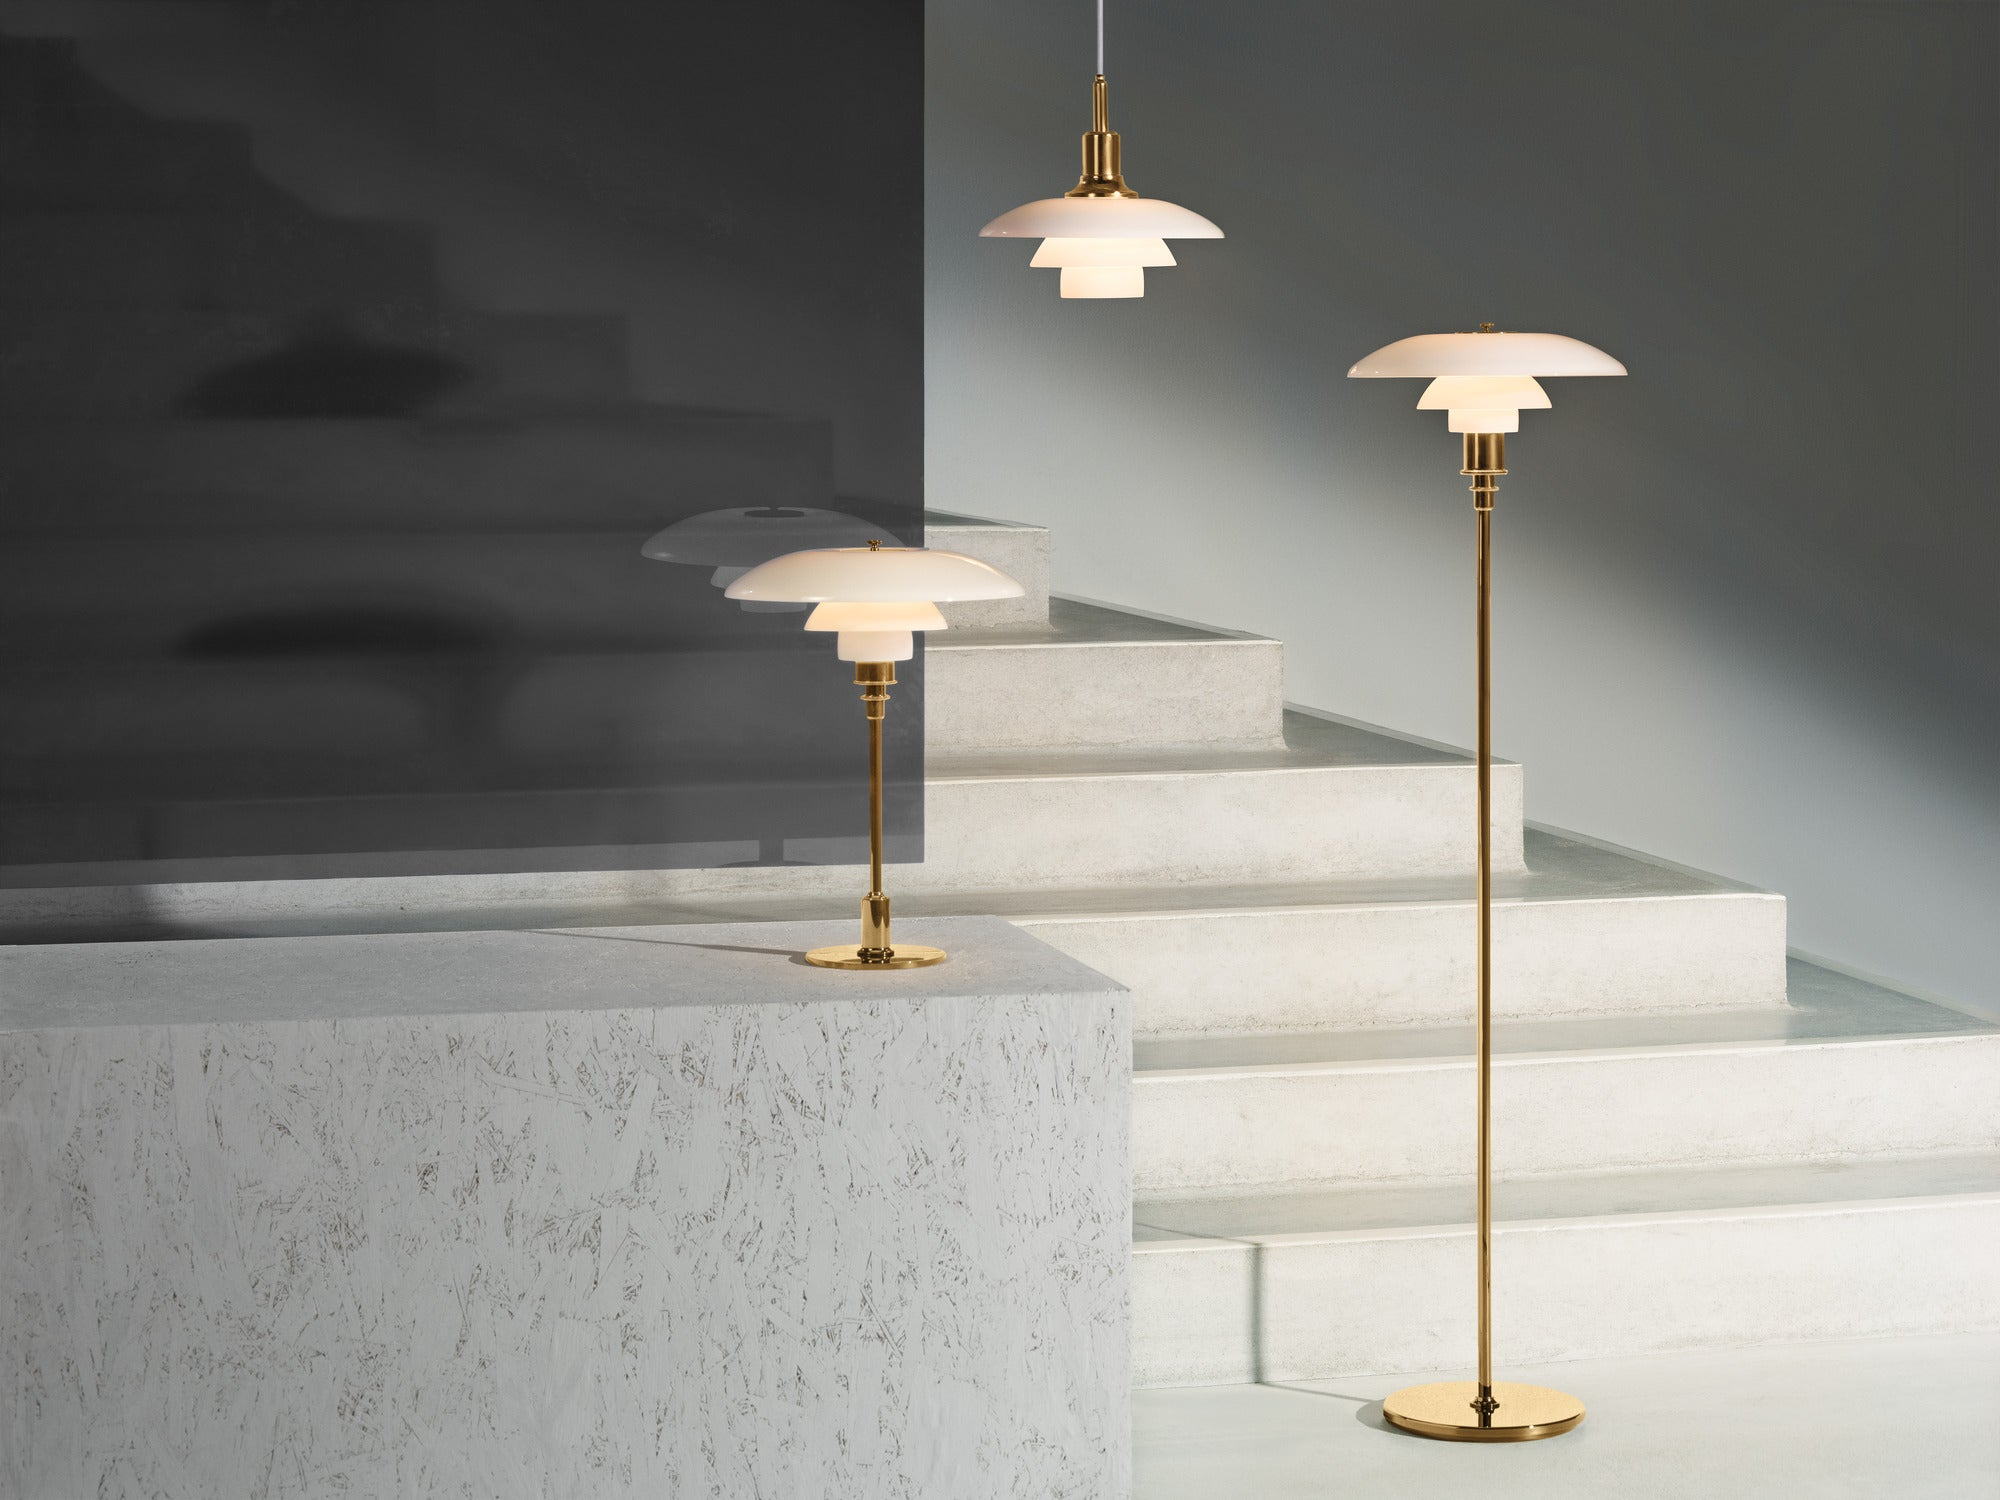 LOUIS POULSEN | PH 3/2 Pendant | Poul Henningsen | 3 options